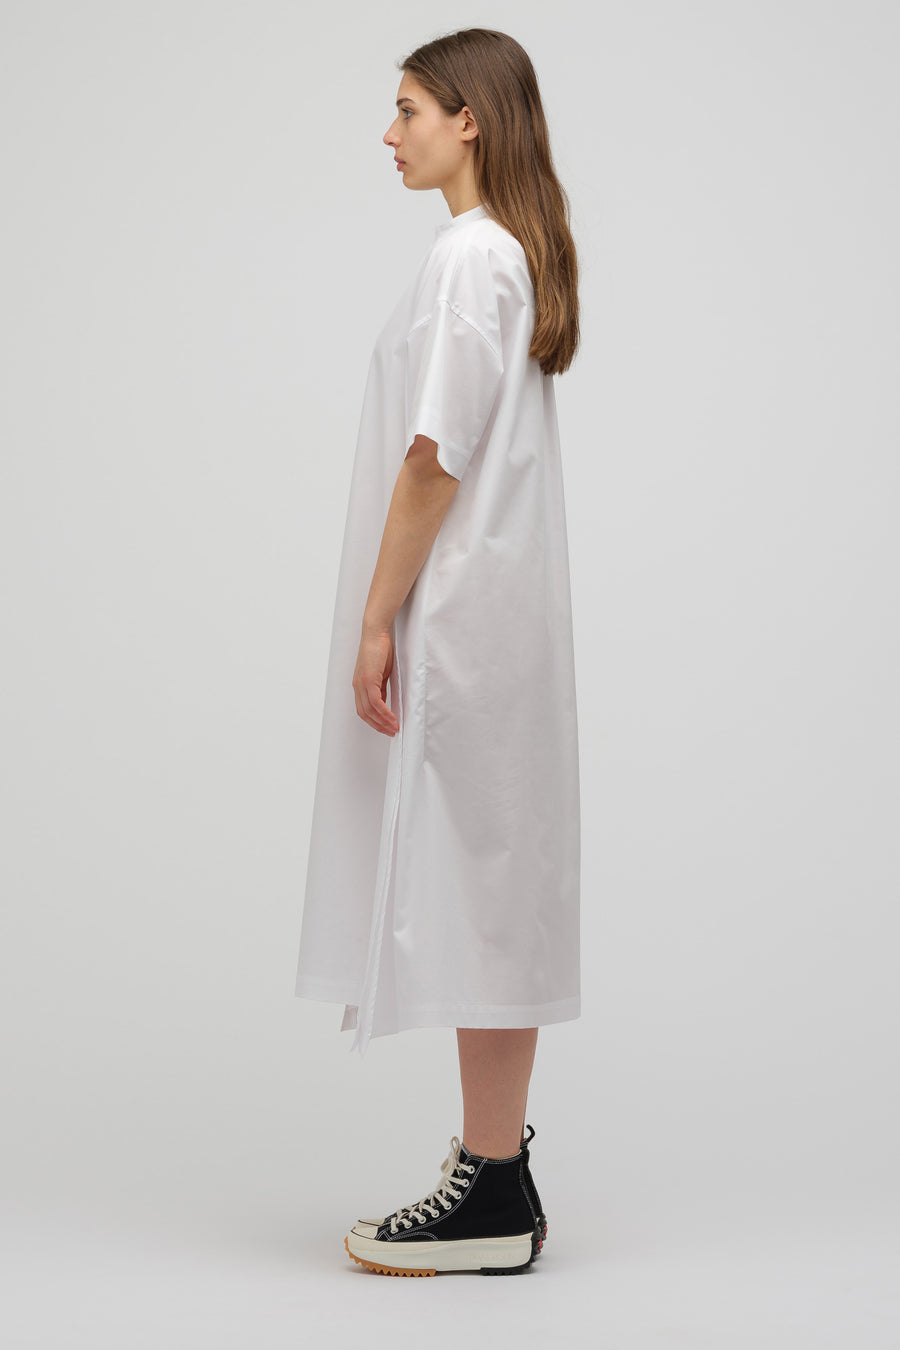 HYKE Short Sleeve Shift Dress in White - Notre